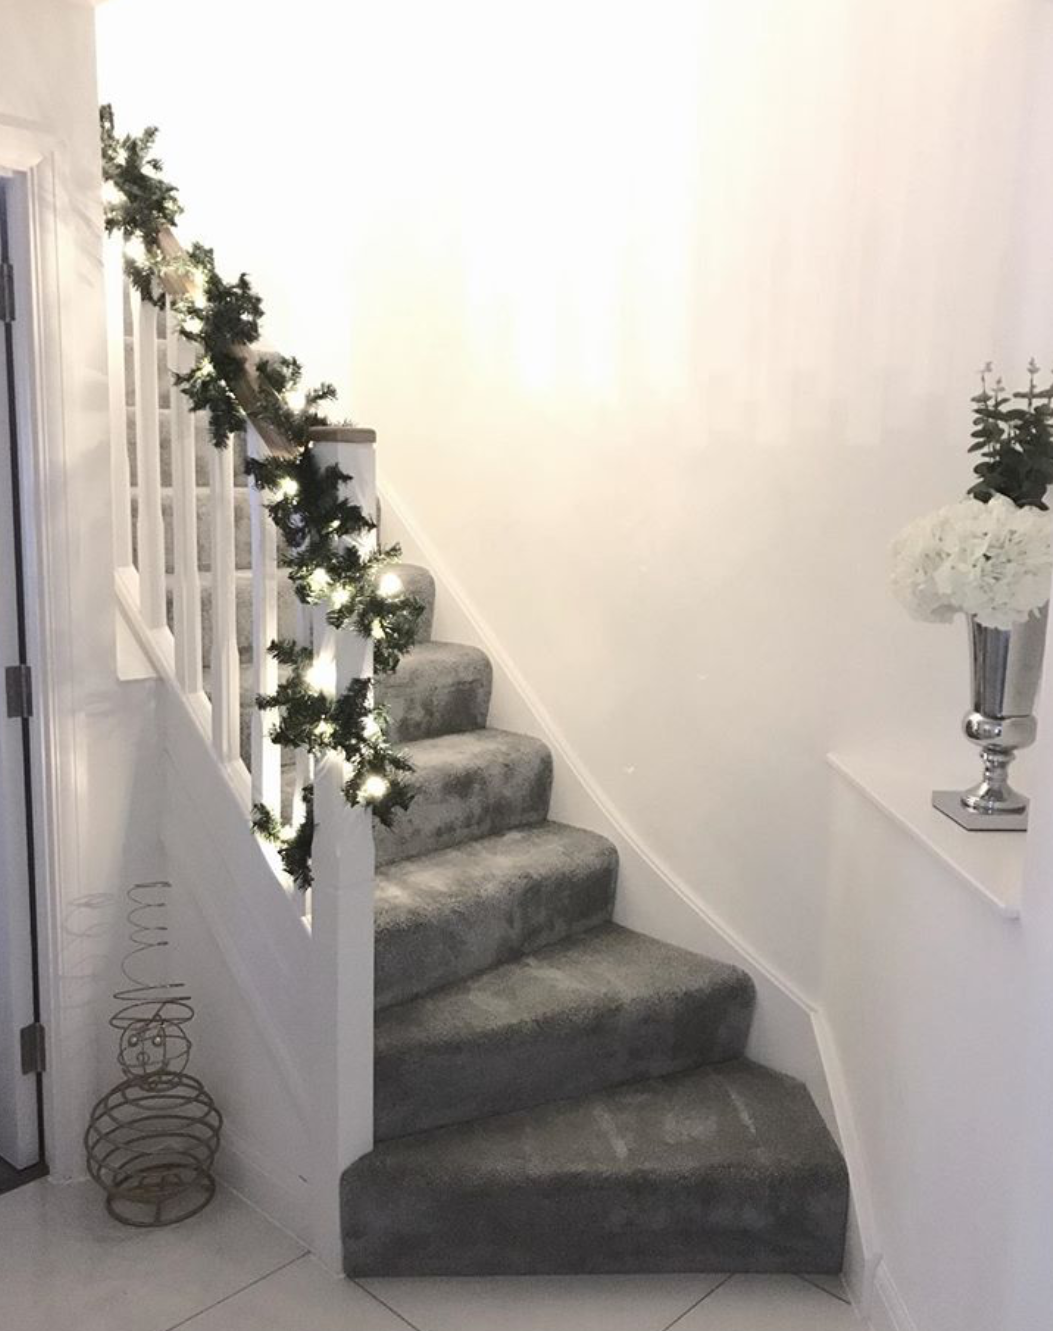 Best Less Is More With This Beautiful Christmas Styling By Amy 400 x 300